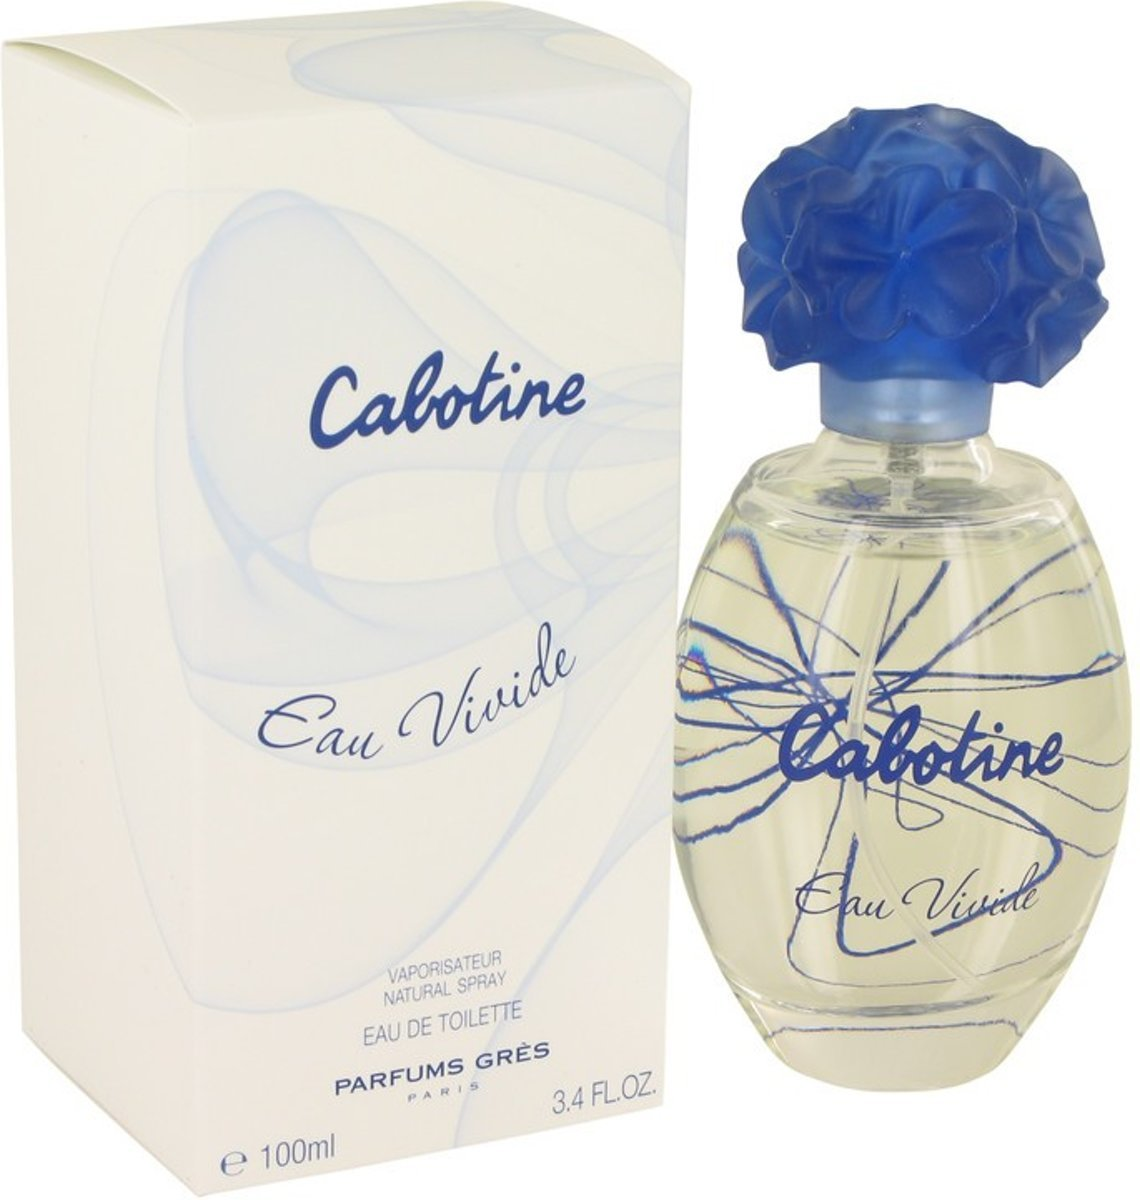 Gres Cabotine Eau Vivide 100 ml EdT Women perfume